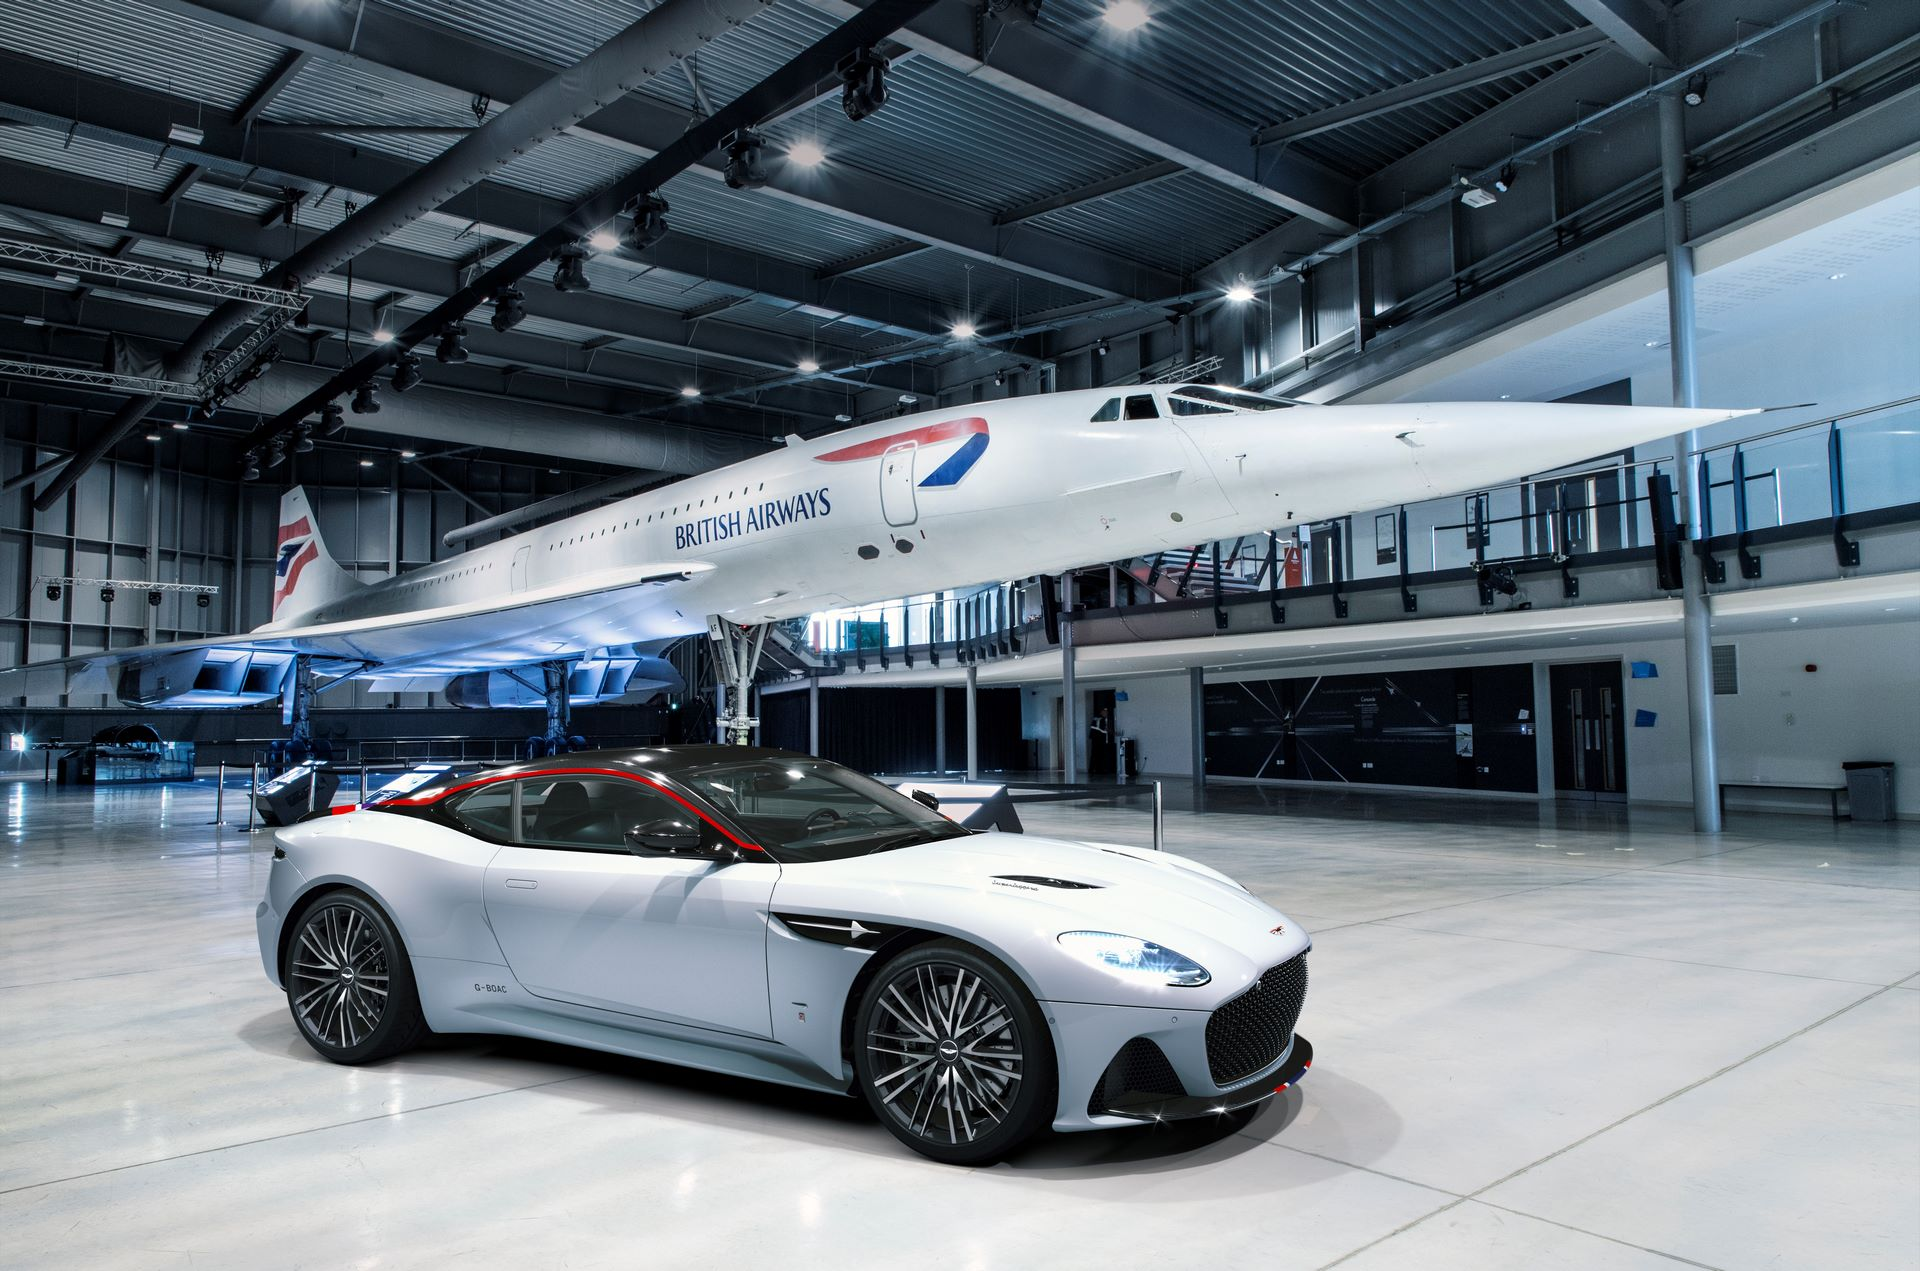 1_Aston-Martin-DBS-Superleggera-Concorde-Edition_01